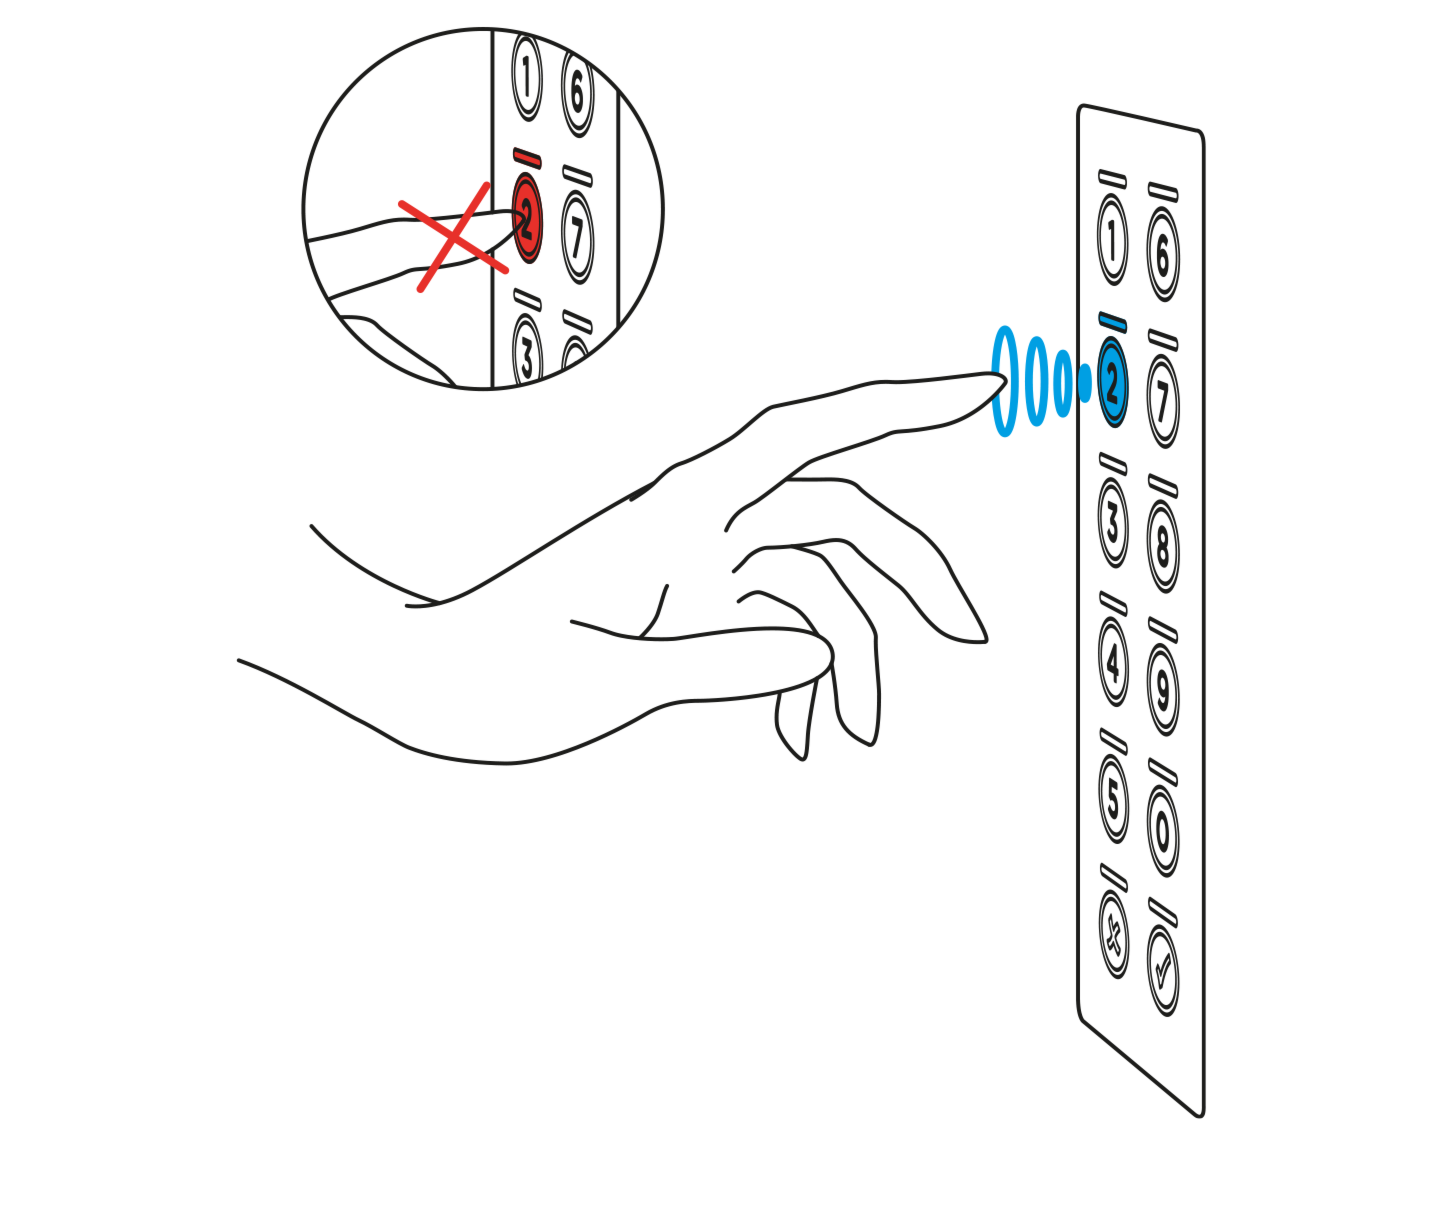 thumb_img_02-air-touch-sandenvendo_disegno_1623315992.png